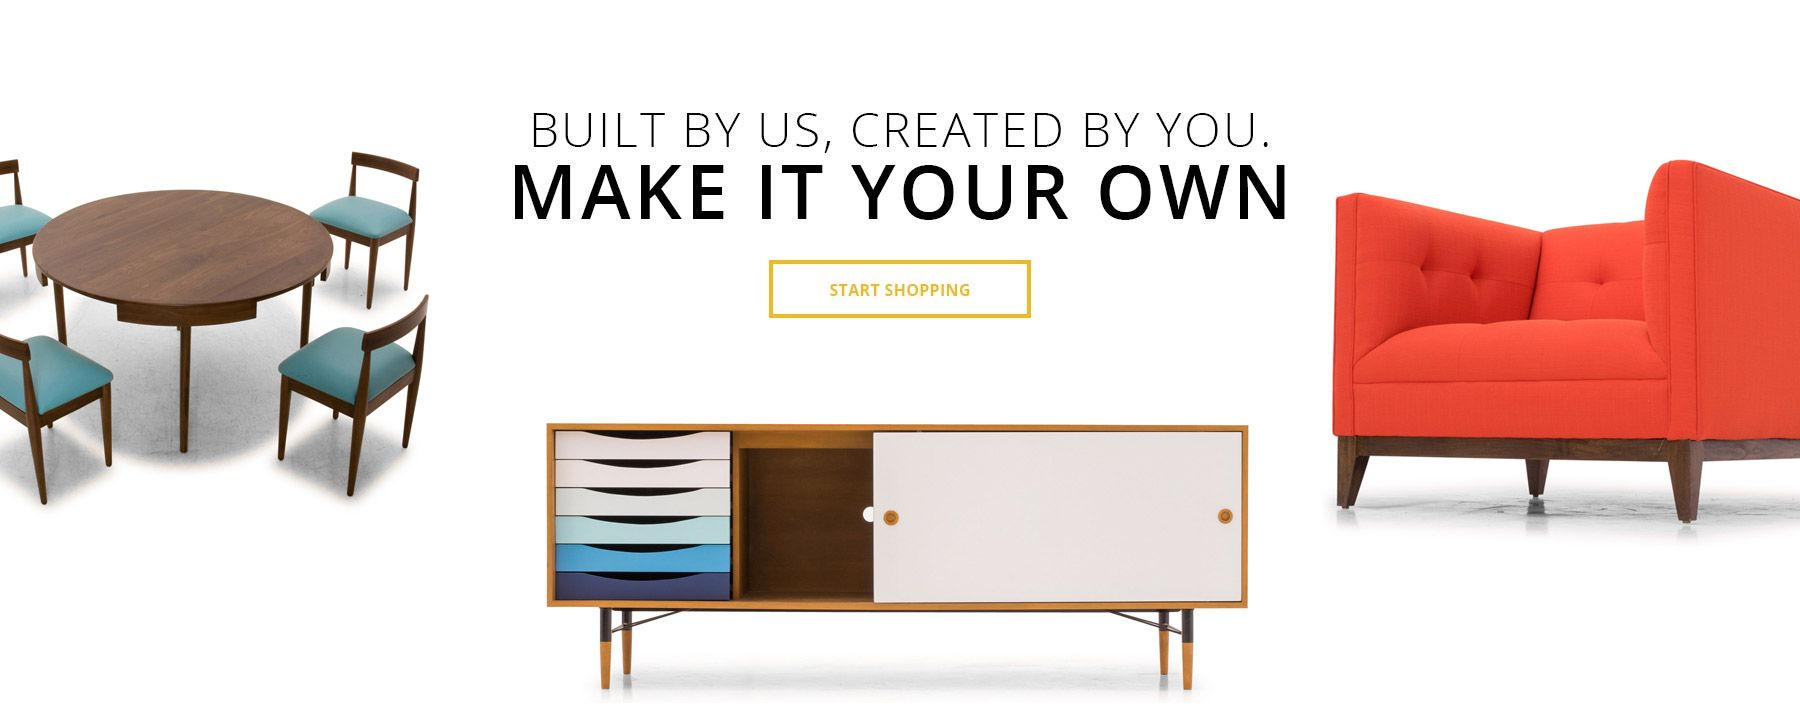 Handcrafted custom mid century modern furniture. Available in over 100 fabric and leather options customized by you, built from responsibly sourced materials, and shipped free!